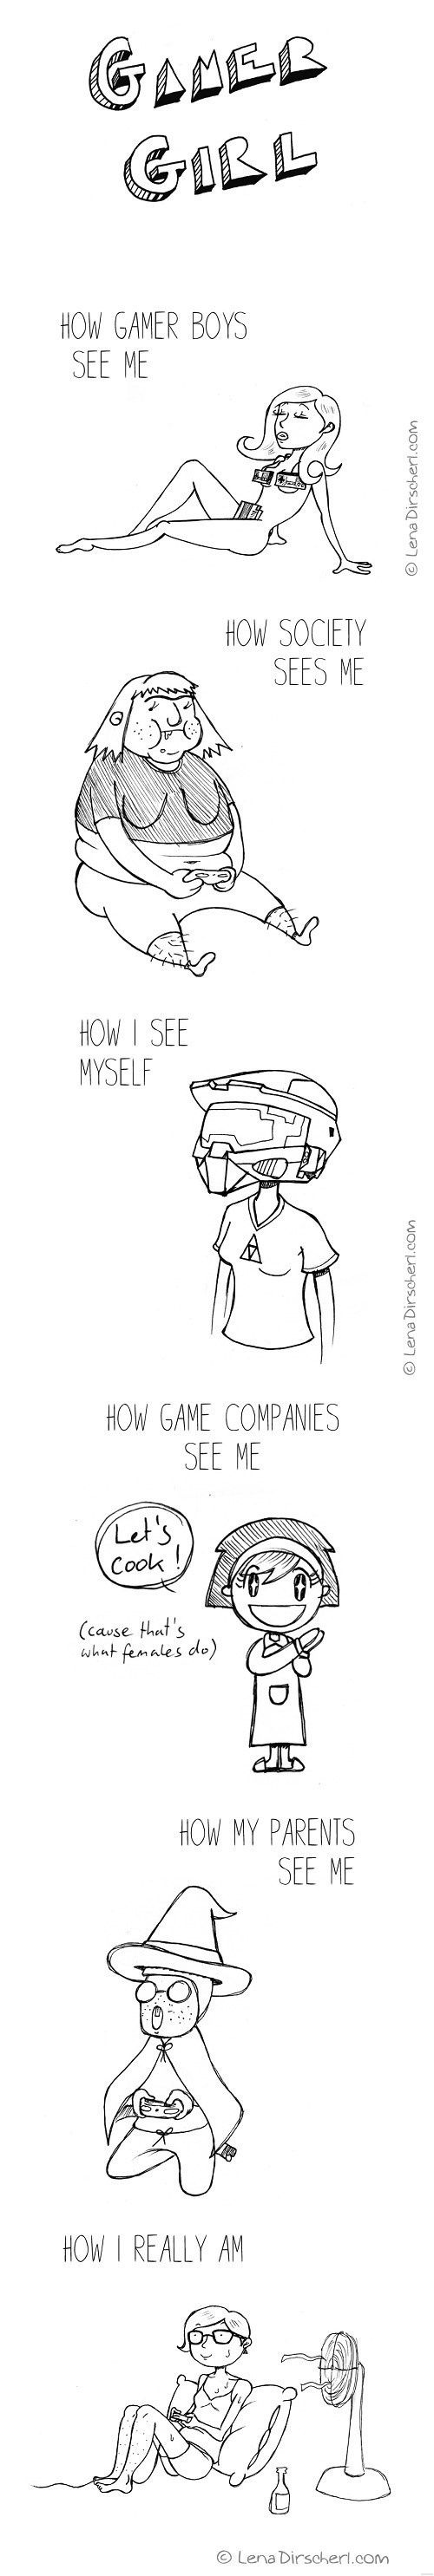 Funny Pictures of the day - How People See Gamer Girls (135 Pics)